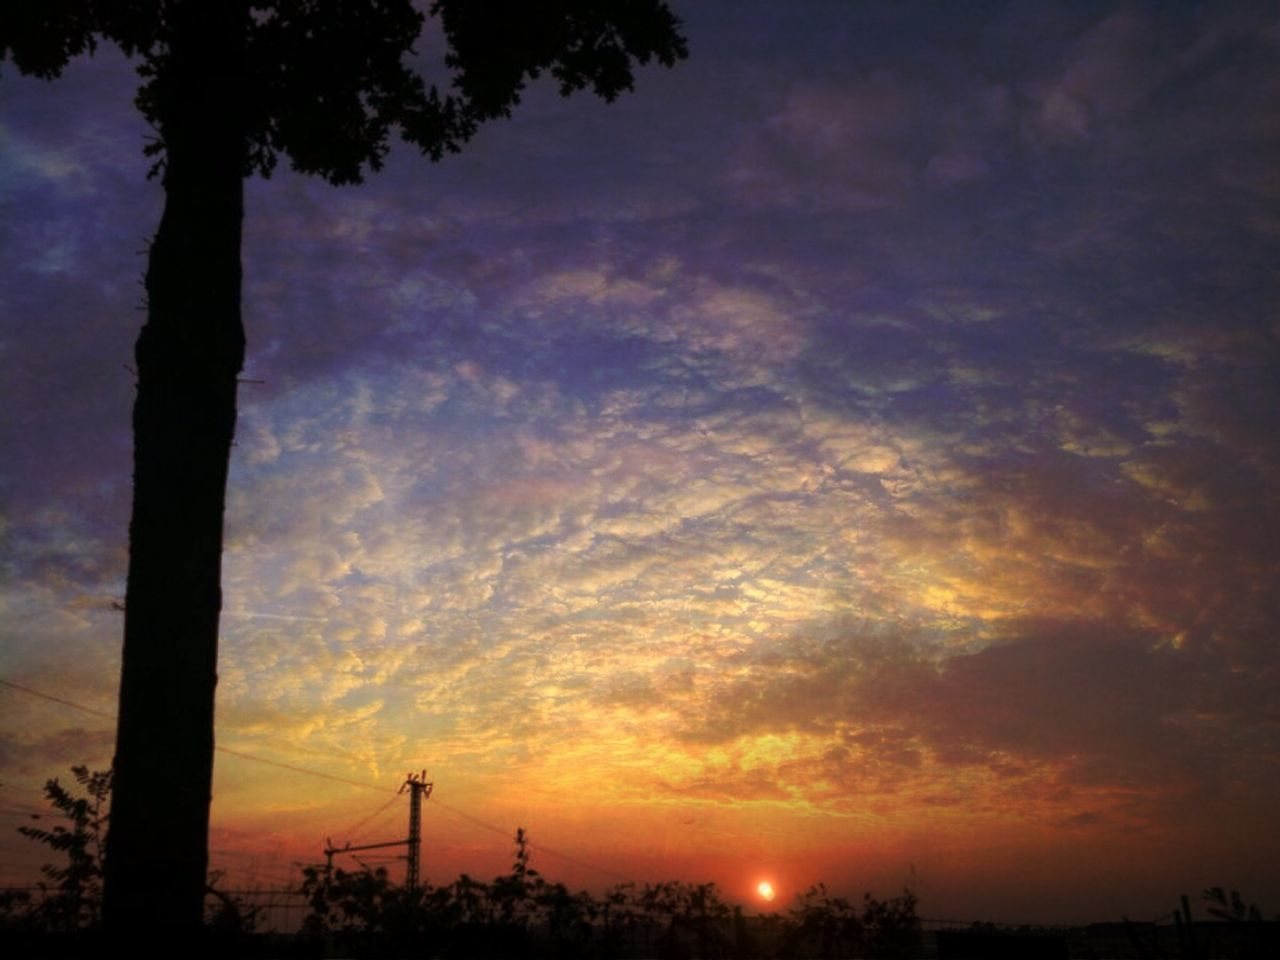 sunset, silhouette, tree, cloud - sky, sky, beauty in nature, nature, scenics, outdoors, no people, tranquil scene, growth, day